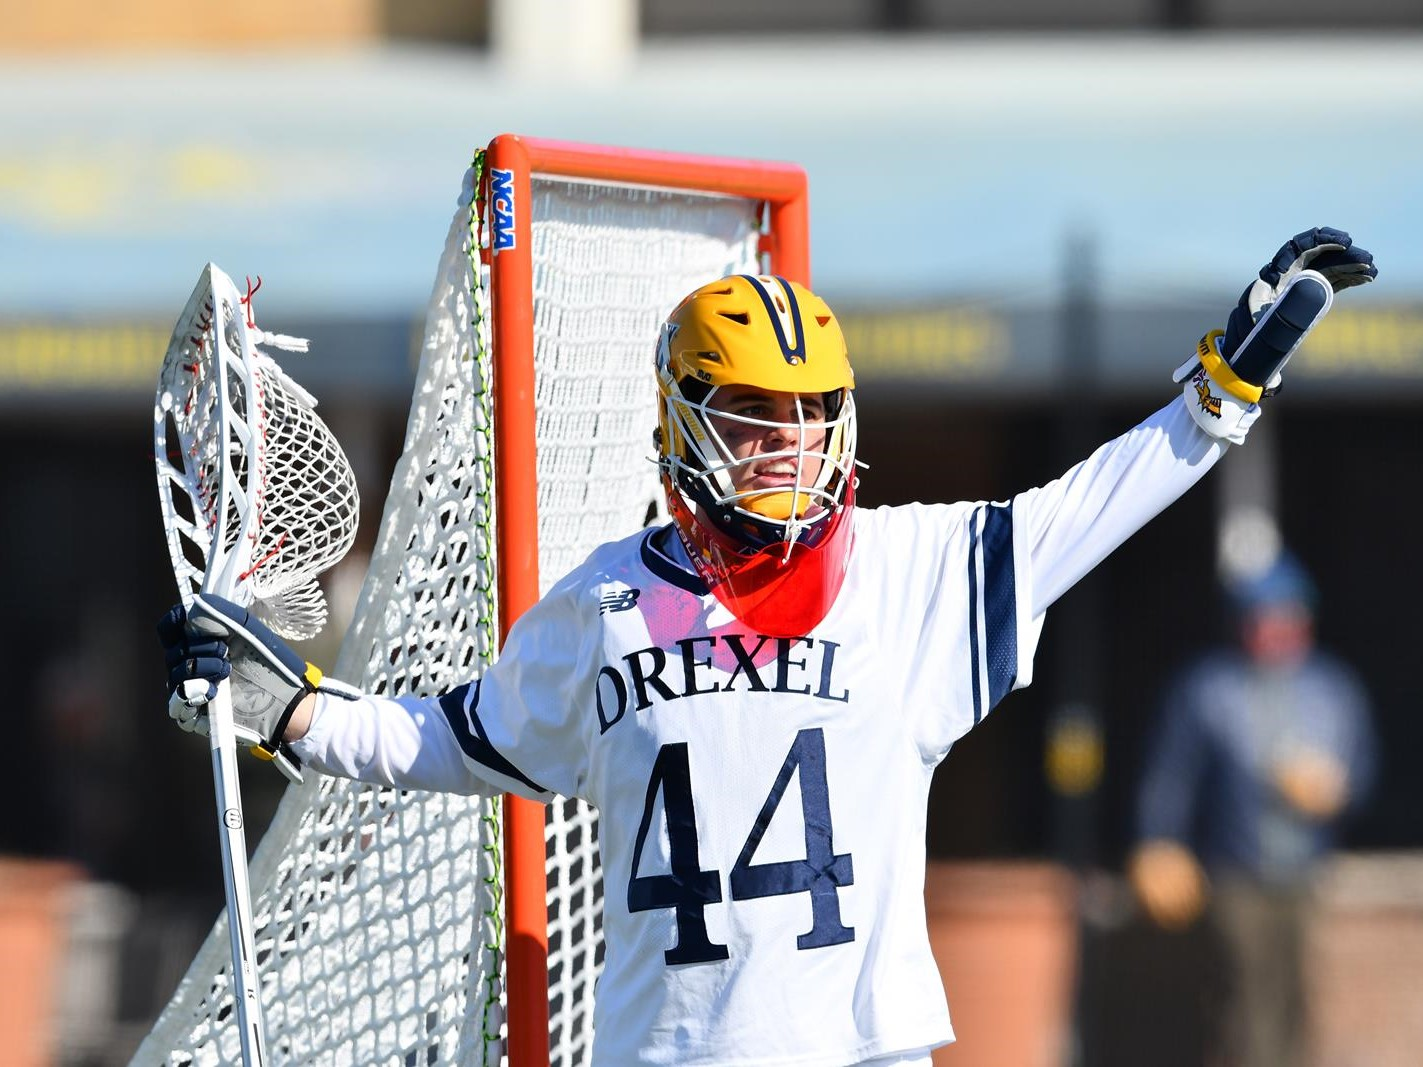 John Van Sickle 2021 Men S Lacrosse Drexel University Athletics As an ncaa equivalency sport, men's college lacrosse coaches are given a pool of money that they can dedicate to. john van sickle 2021 men s lacrosse